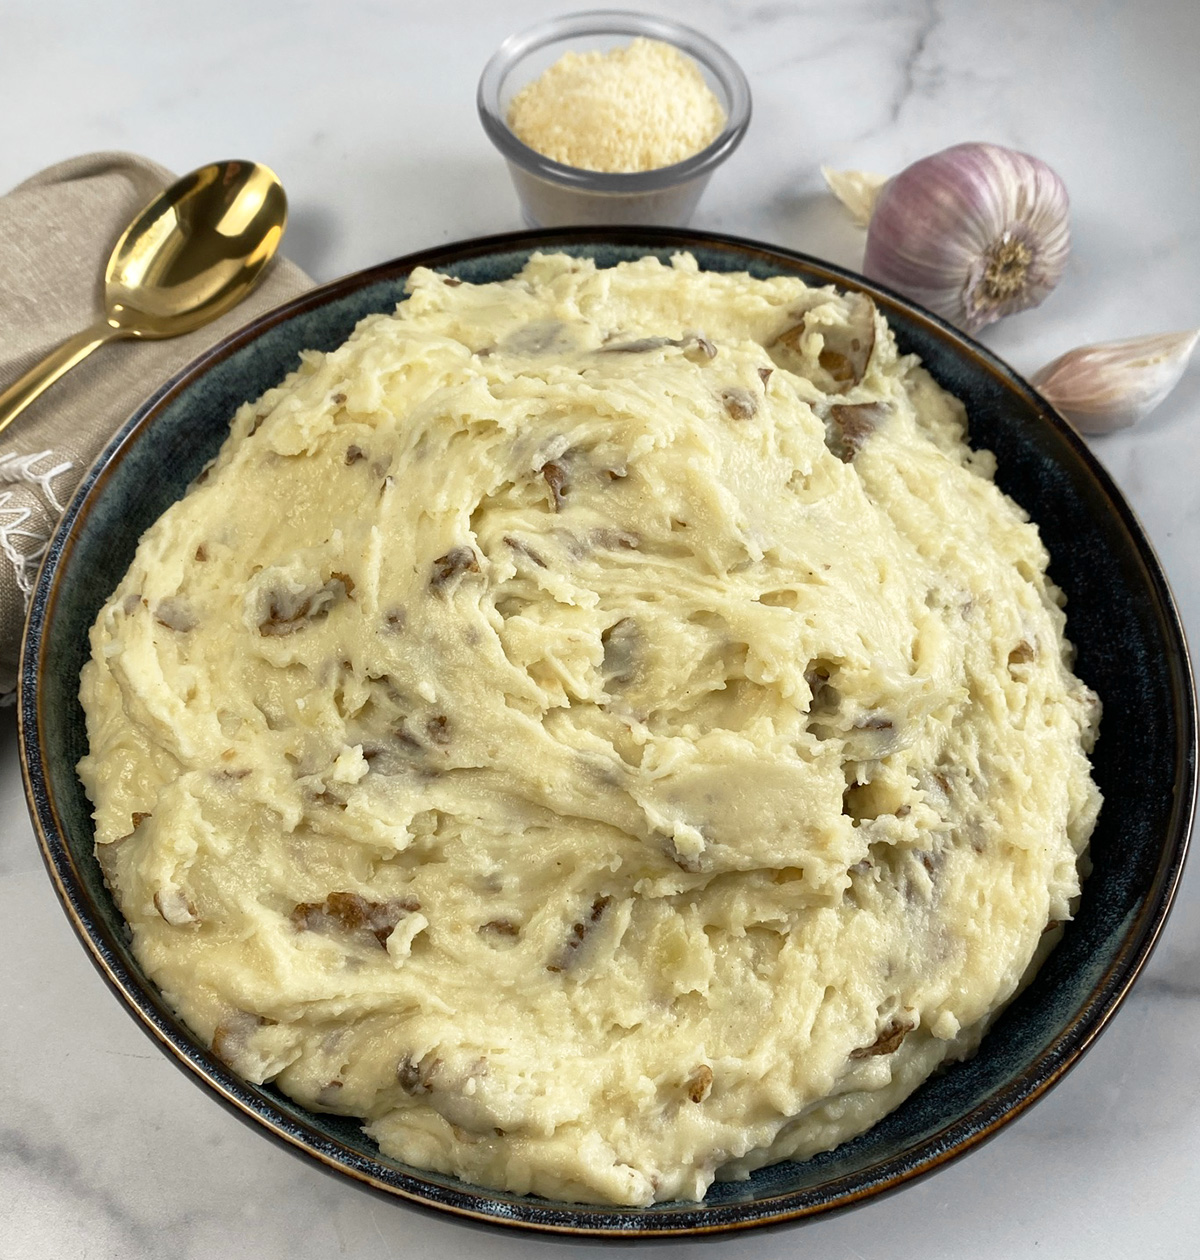 Recipe for Instant Pot mashed potatoes